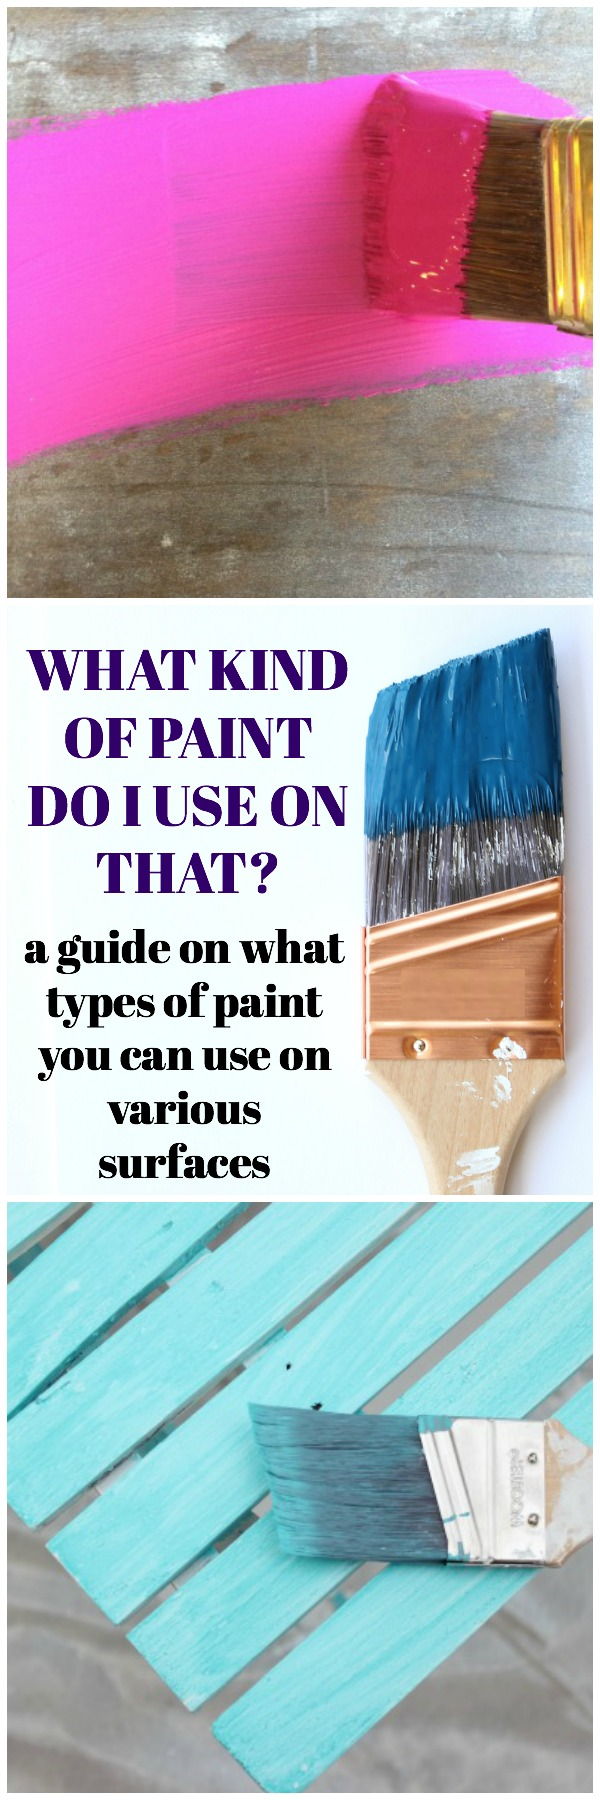 Types of Paint - Best Paint for Wood Furniture